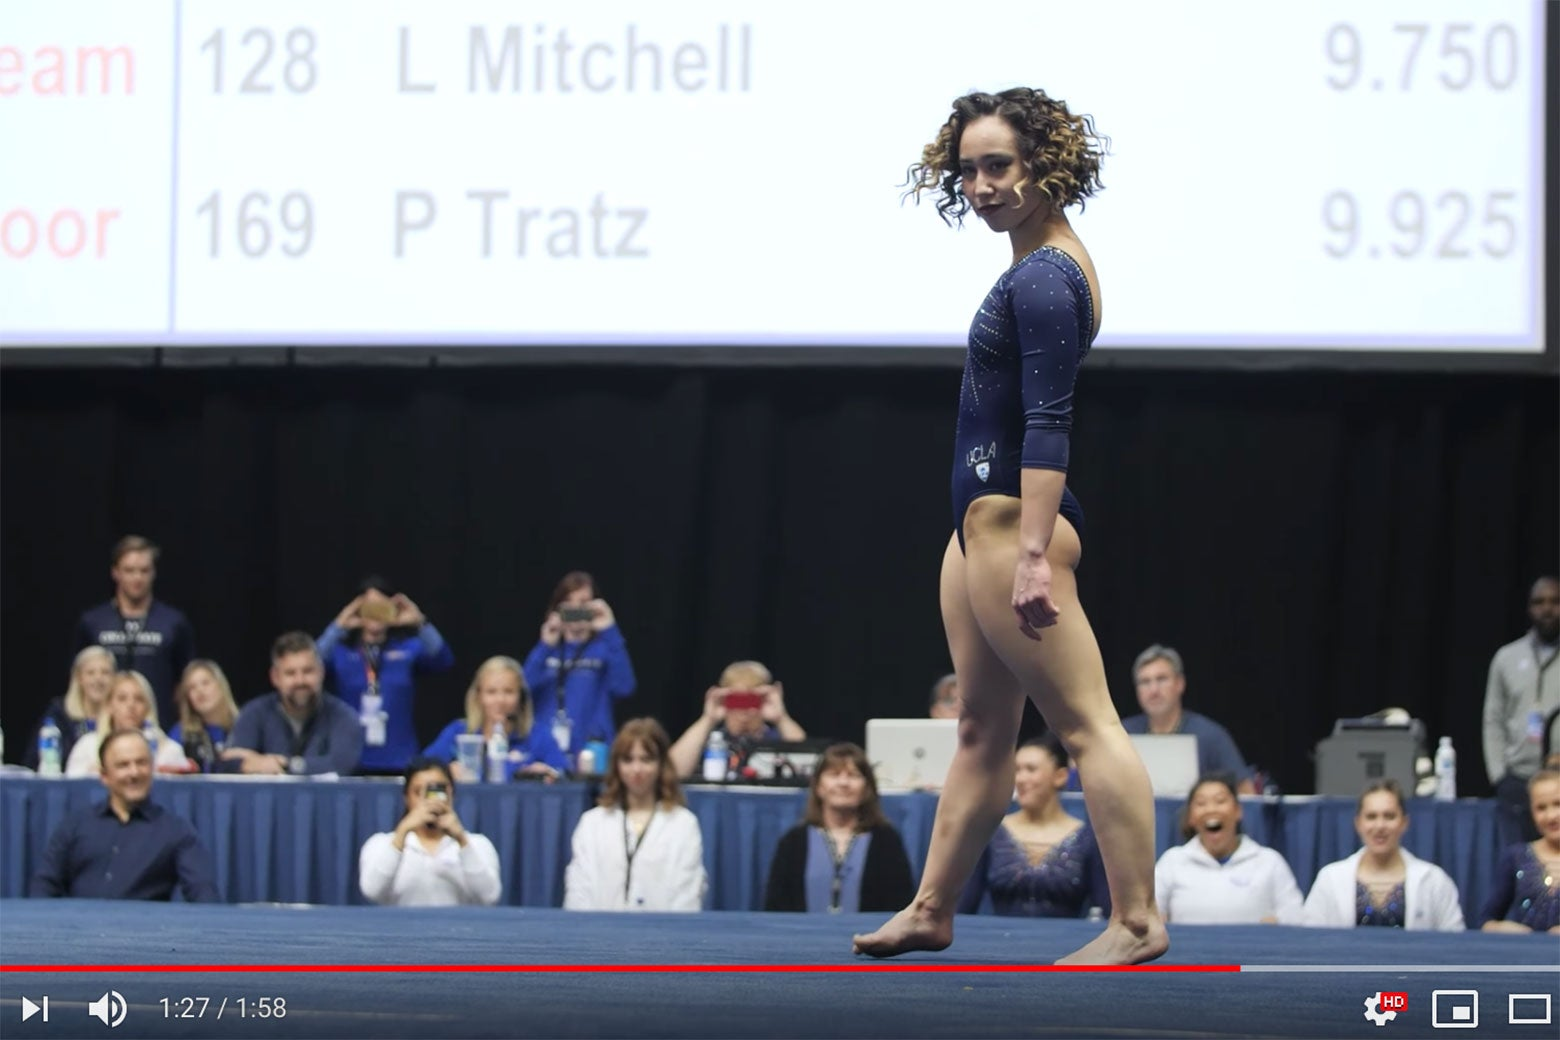 slate.com - Rebecca Schuman - Katelyn Ohashi's Viral Floor Exercise Routine Could Only Exist at UCLA